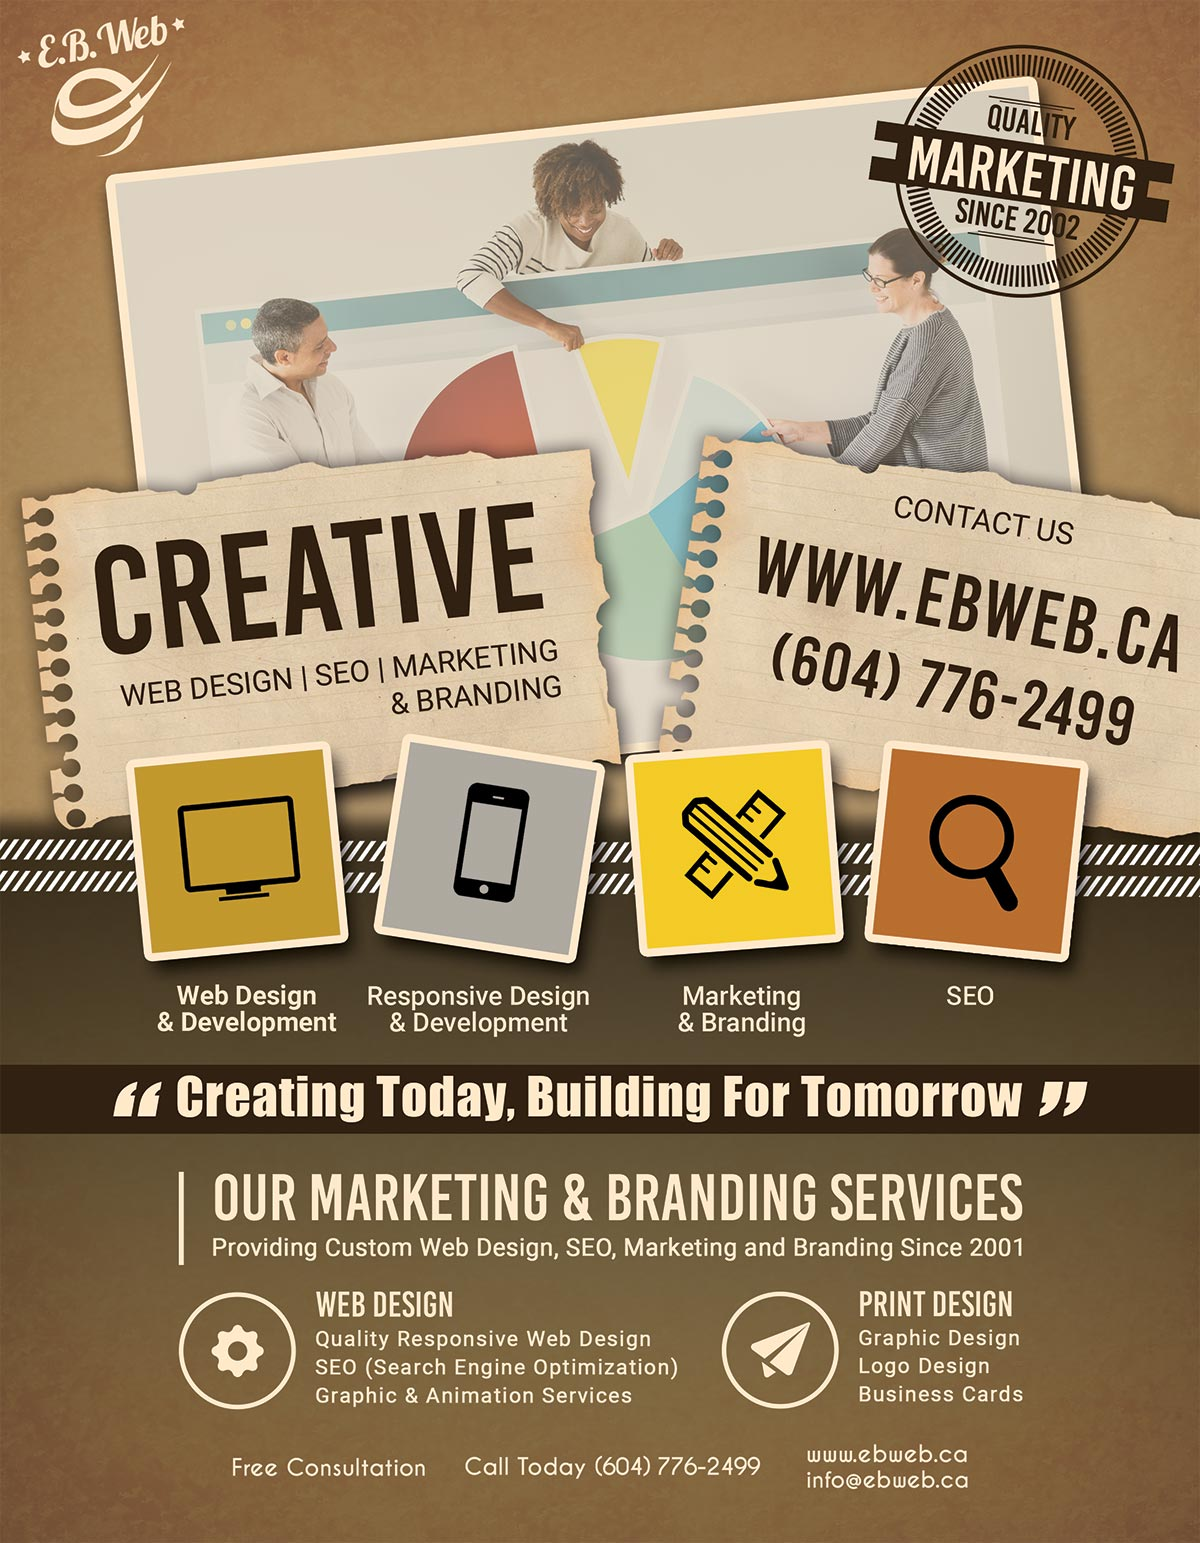 E.B. Web 2019 Flyer Advertisement